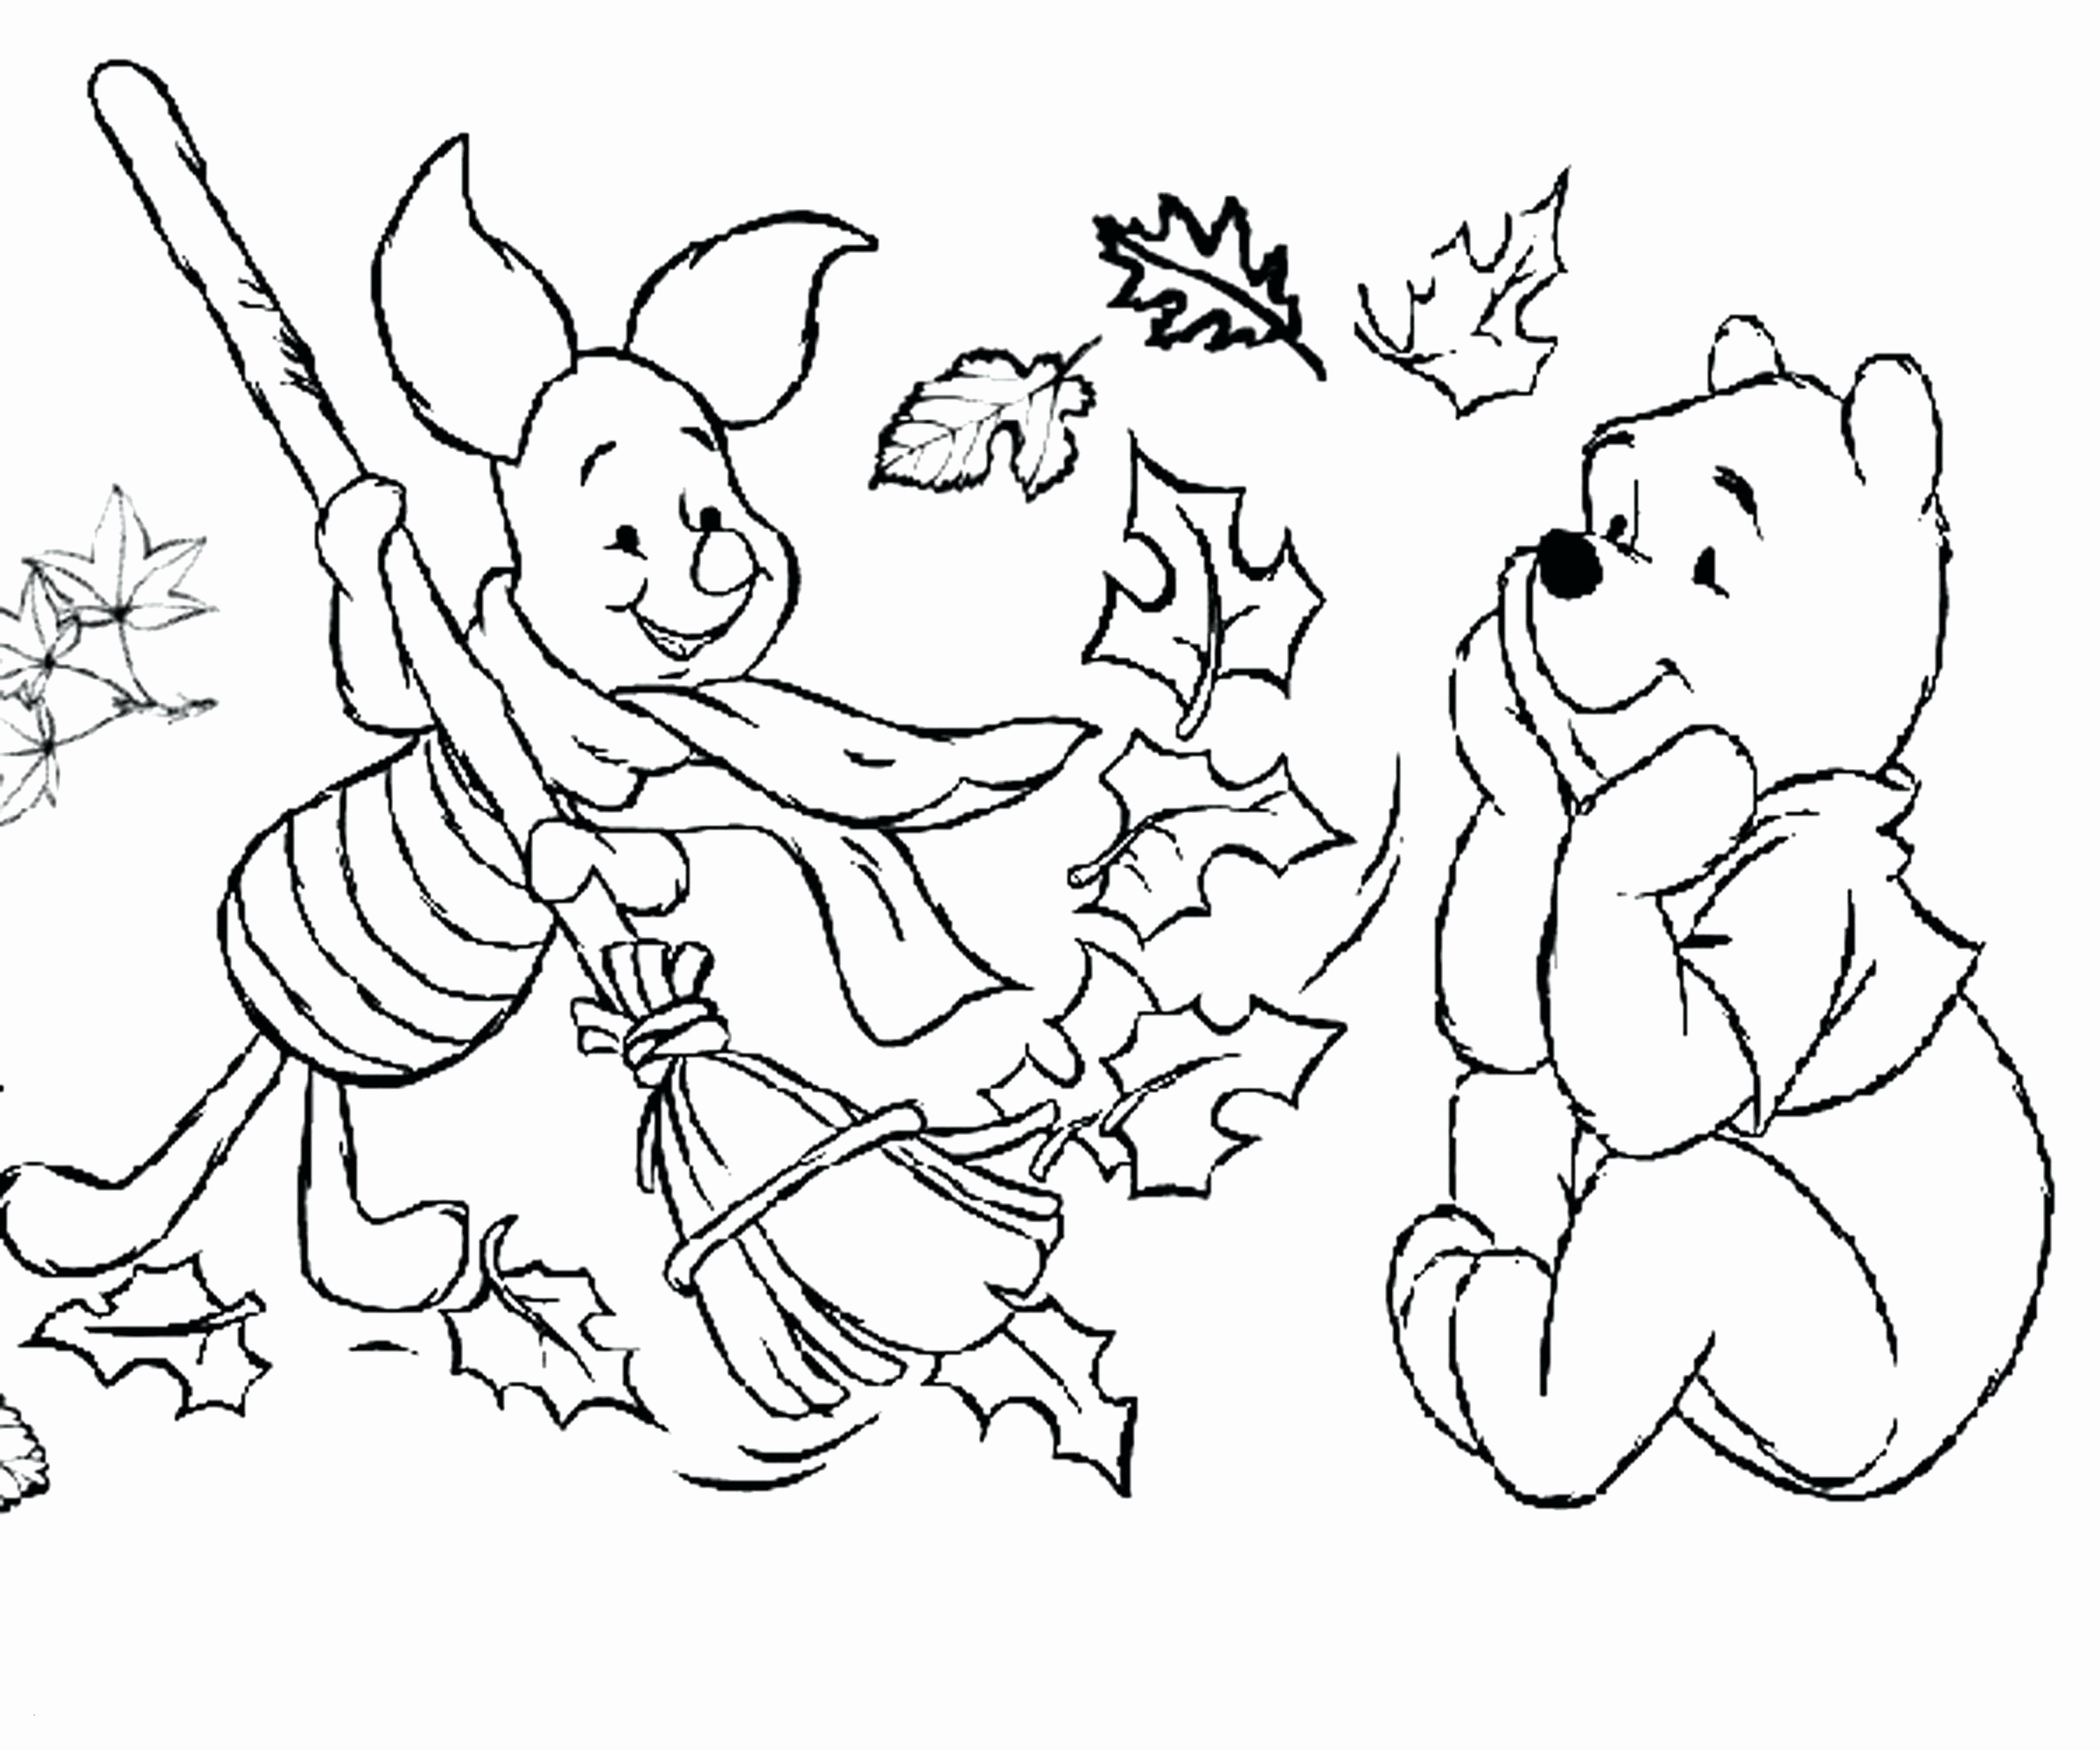 coloring pages for kids numbers Download-Number 2 Coloring Pages for toddlers Coloring Pages for Children Great Preschool Fall Coloring Pages 0d 5-t